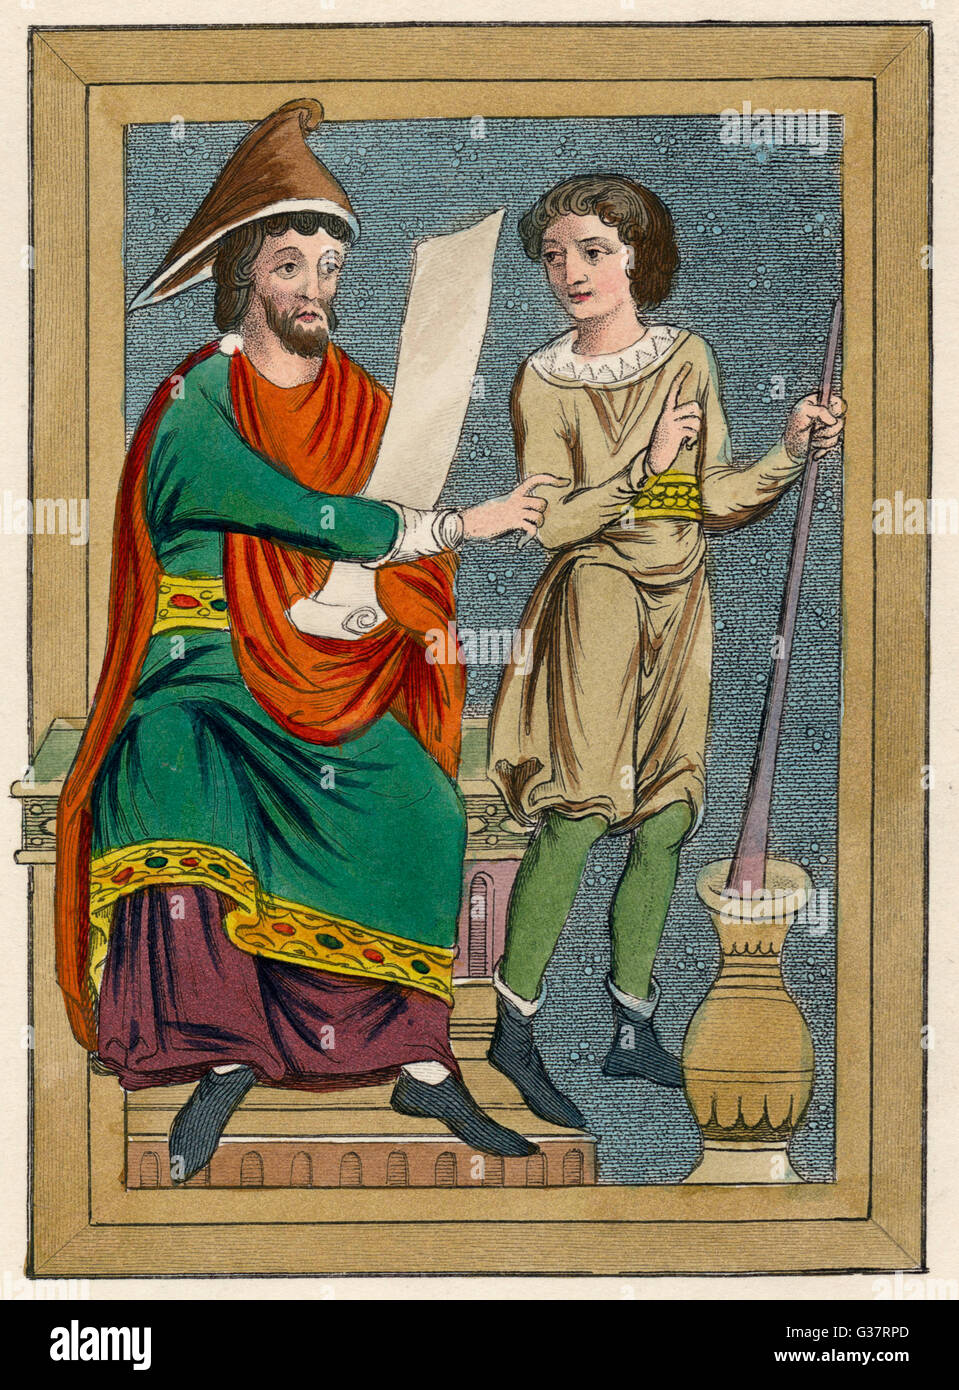 Physician and his servant          Date: 13th Century - Stock Image